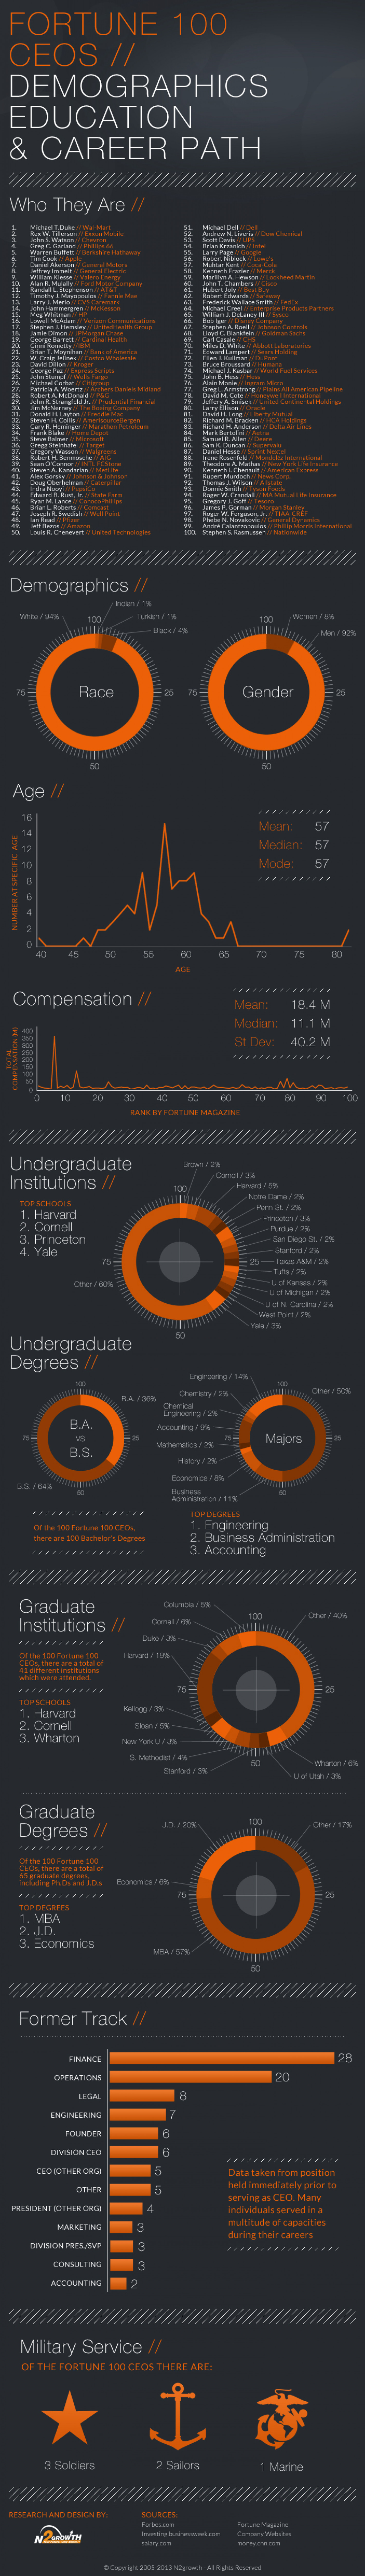 Fortune 100 CEOs | Demographics, Education, and Career Path Infographic